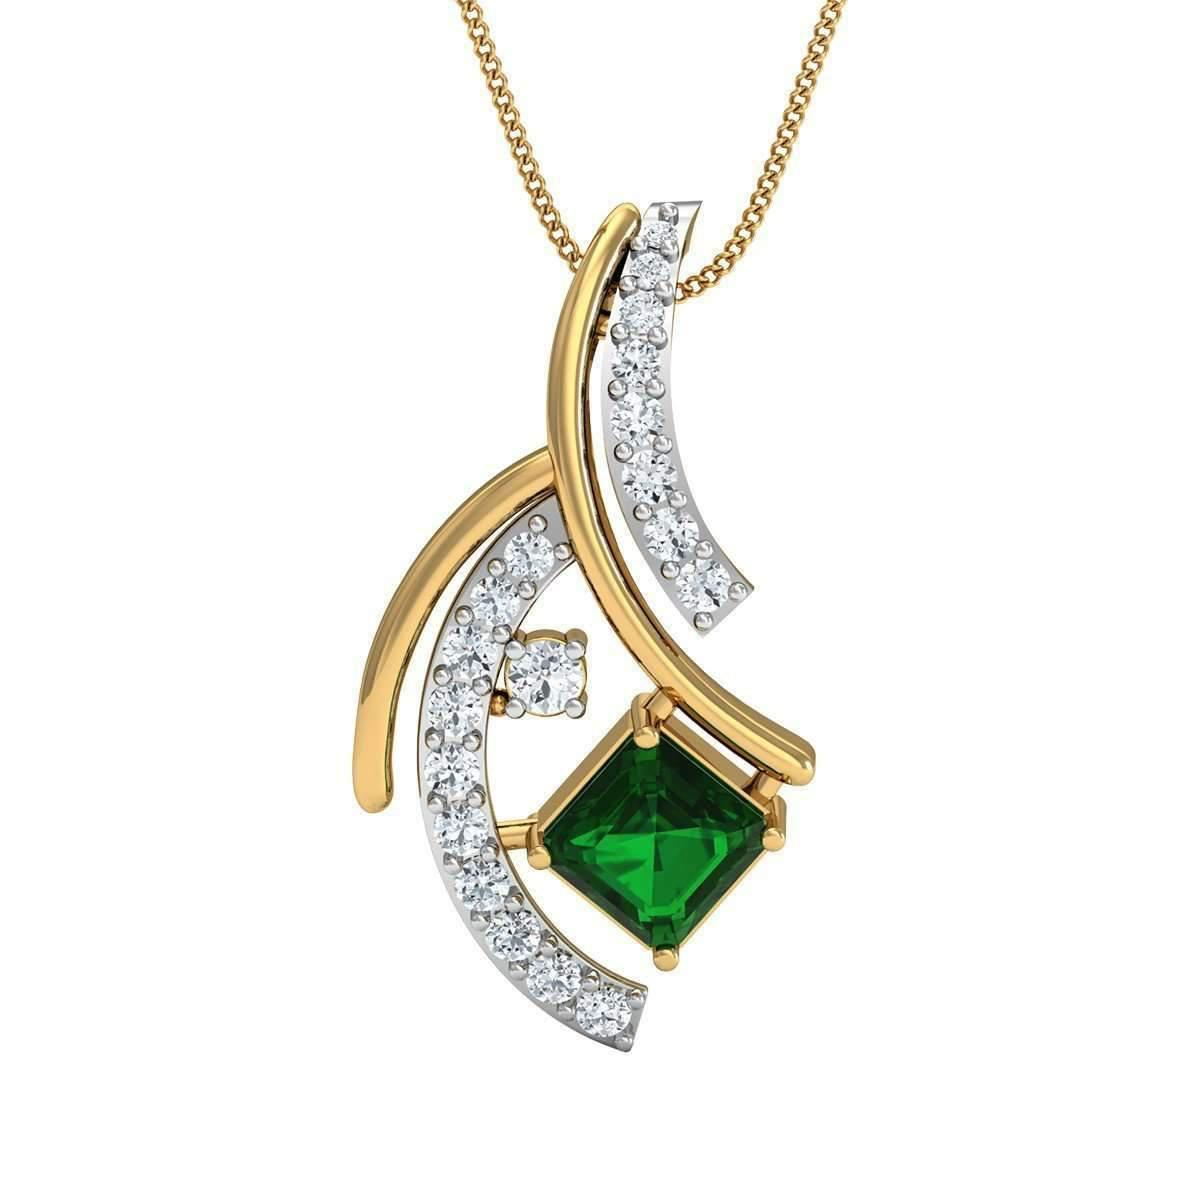 Diamoire Jewels Hand-carved 10kt Yellow Gold Pendant Set With Premium Emeralds and Diamonds aPehez43